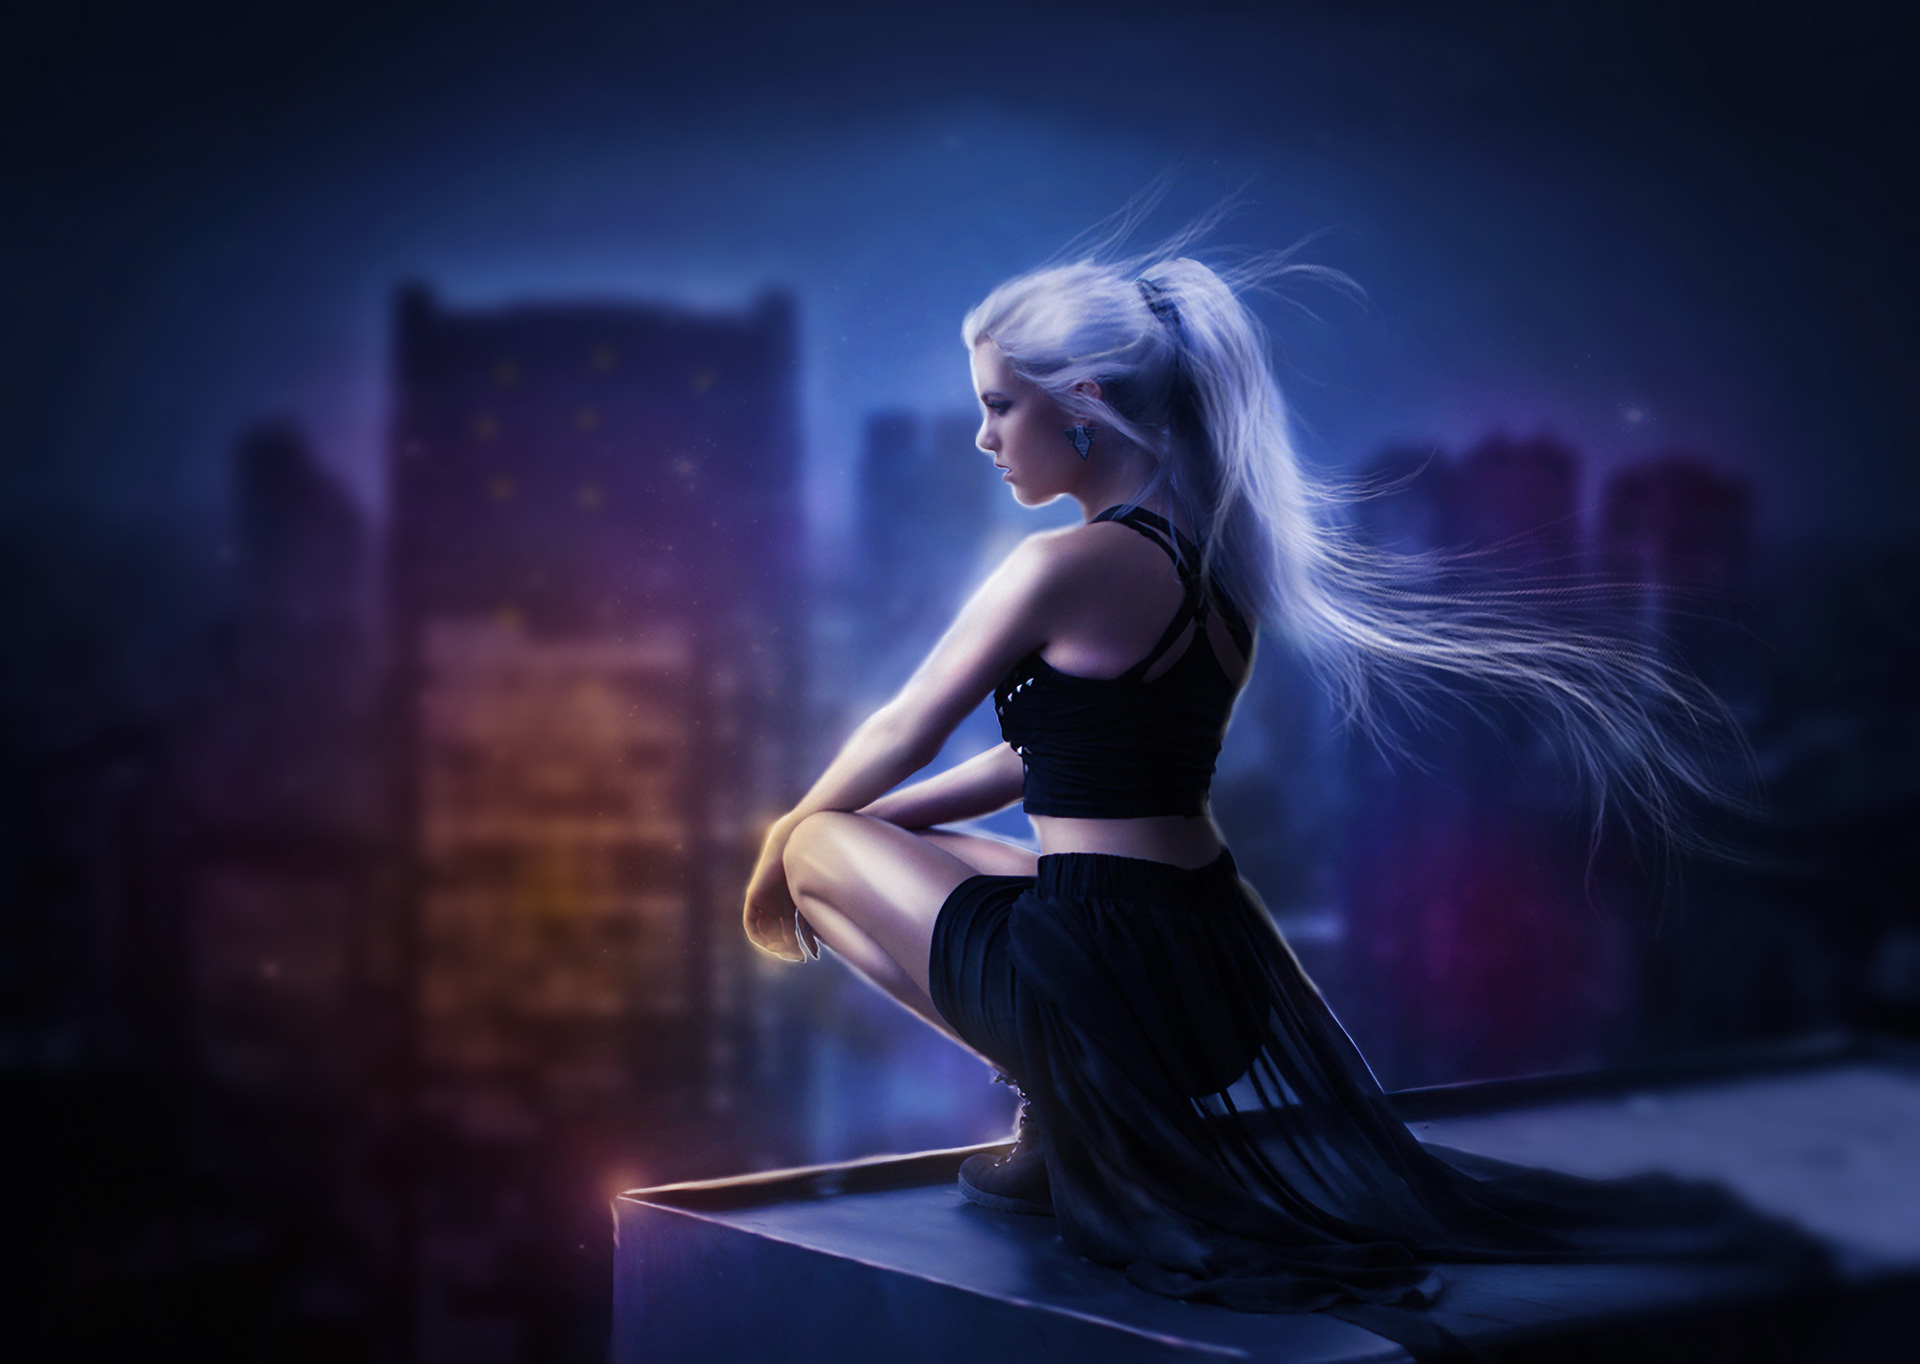 3840x2400 Girl On Roof Of Building 4k HD 4k Wallpapers ...